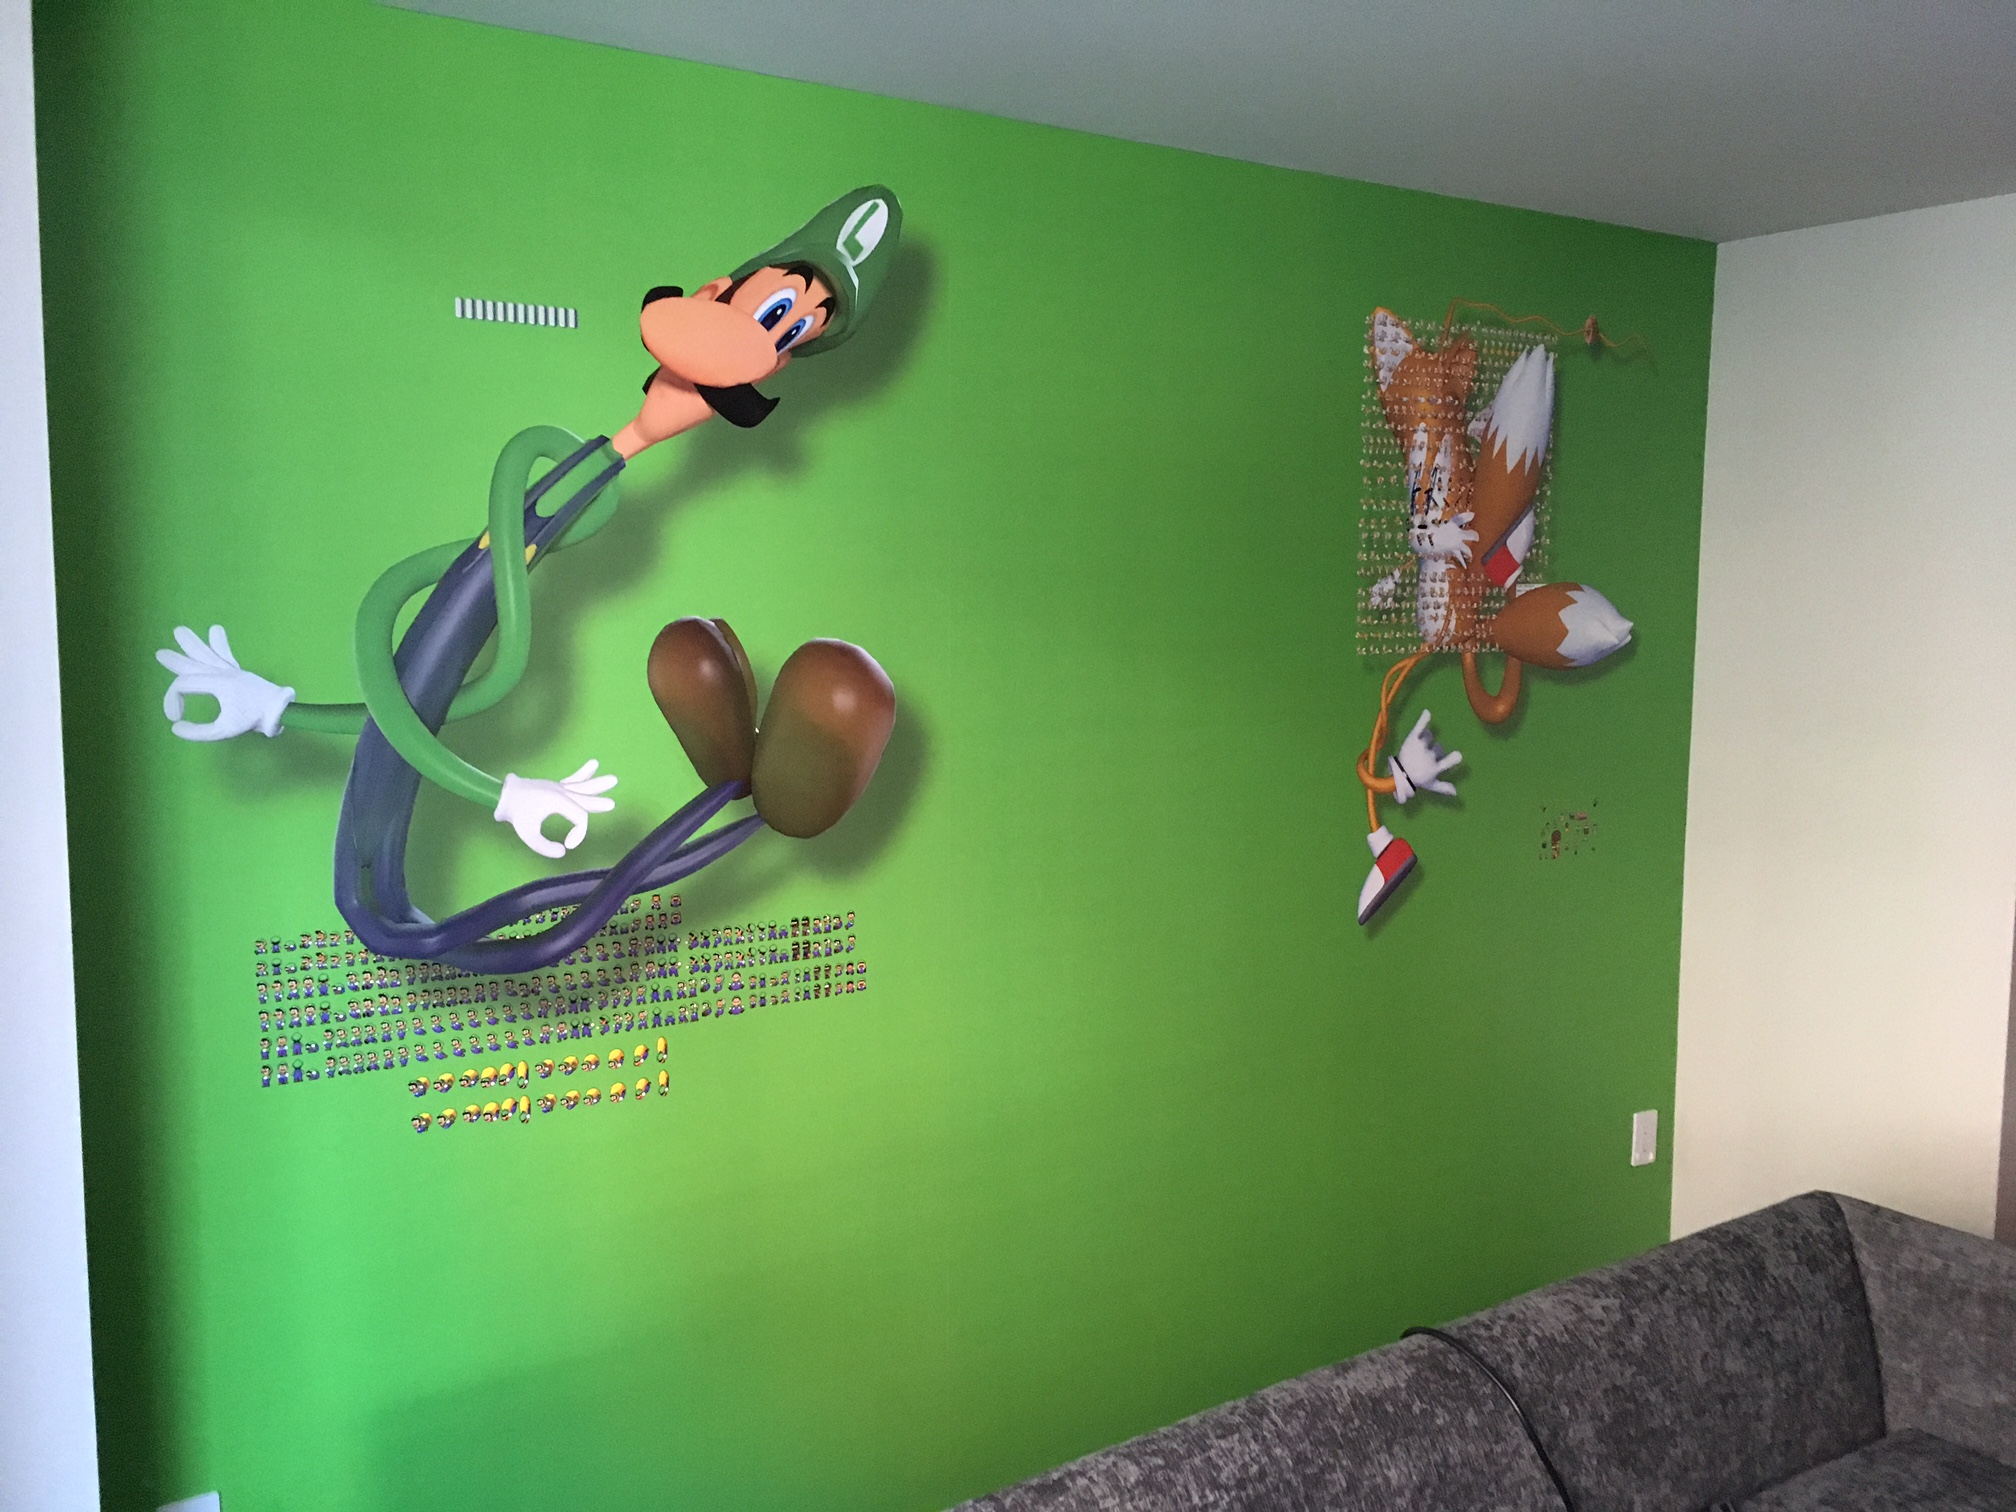 21c Museum Hotel Kids Room Wall Mural & Custom Wall Mural Decals | Dynamark Graphics Group Nashville